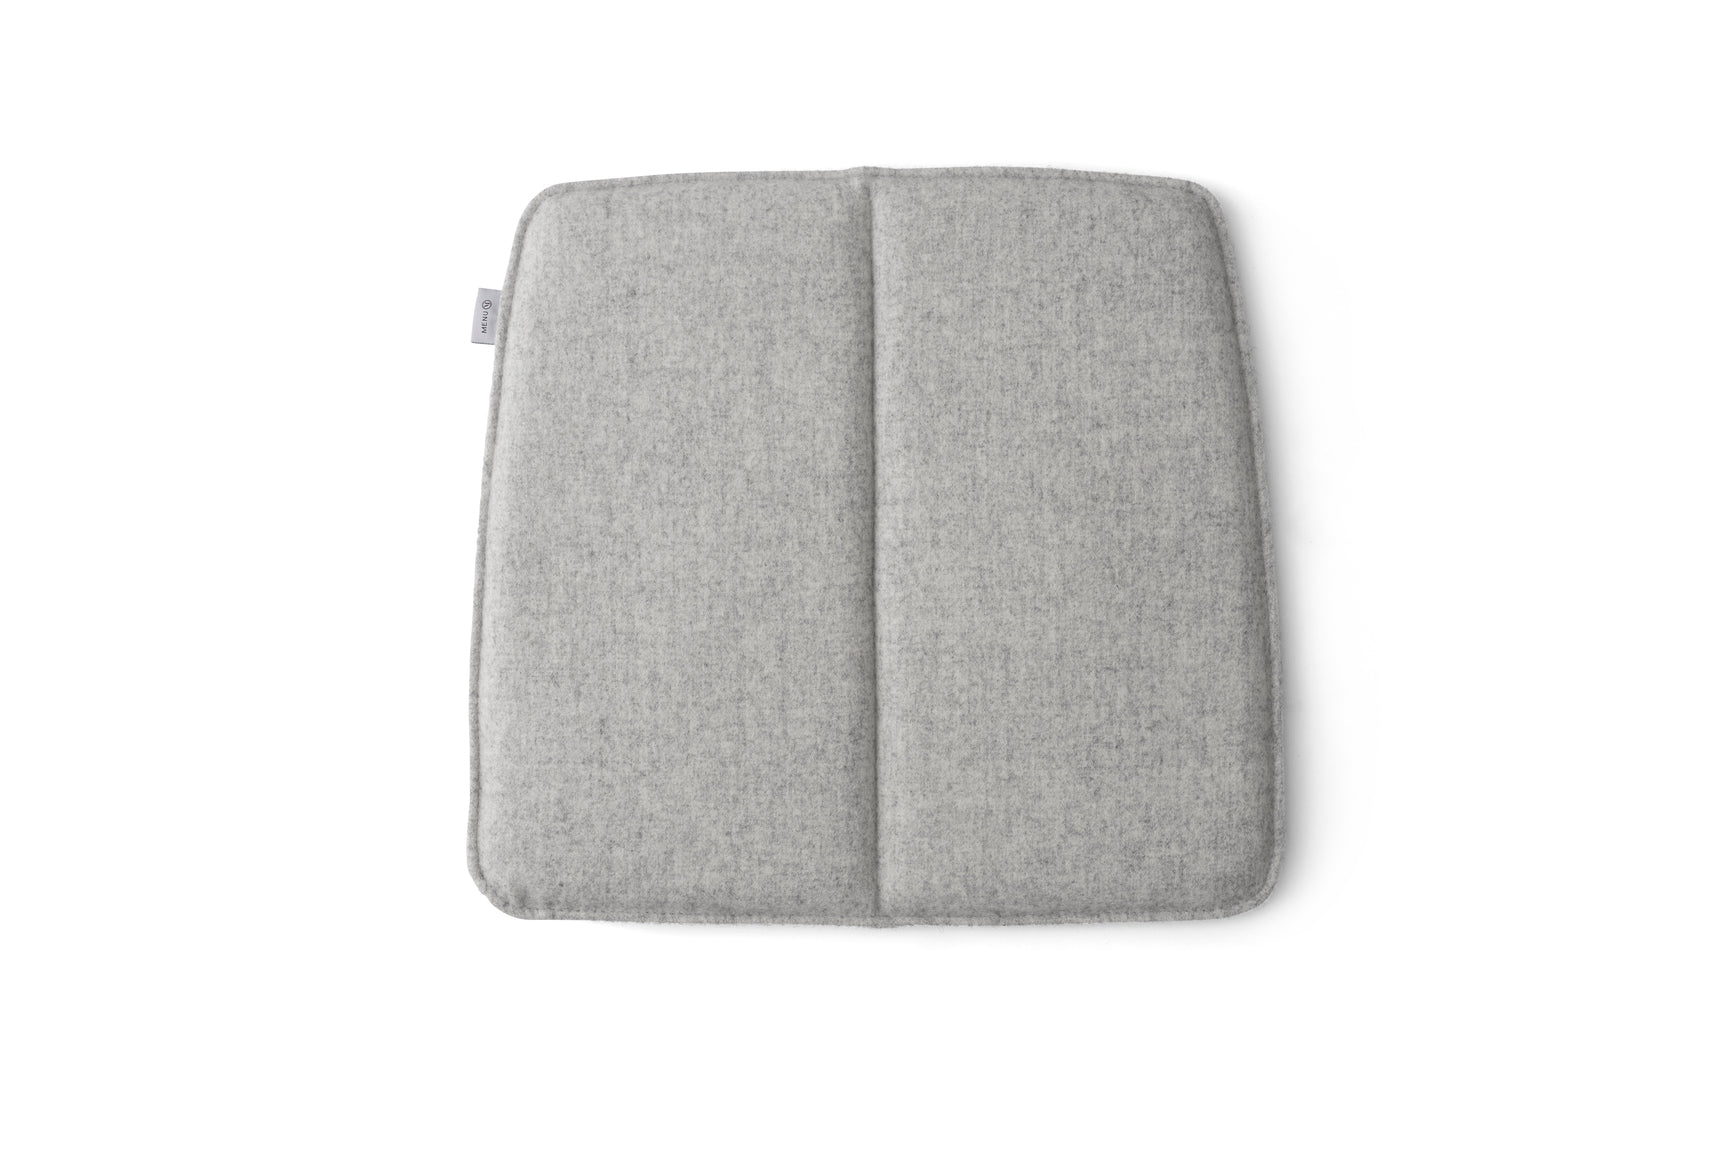 MENU WM STRING LOUNGE CHAIR CUSHION - LIGHT GREY - INDOOR